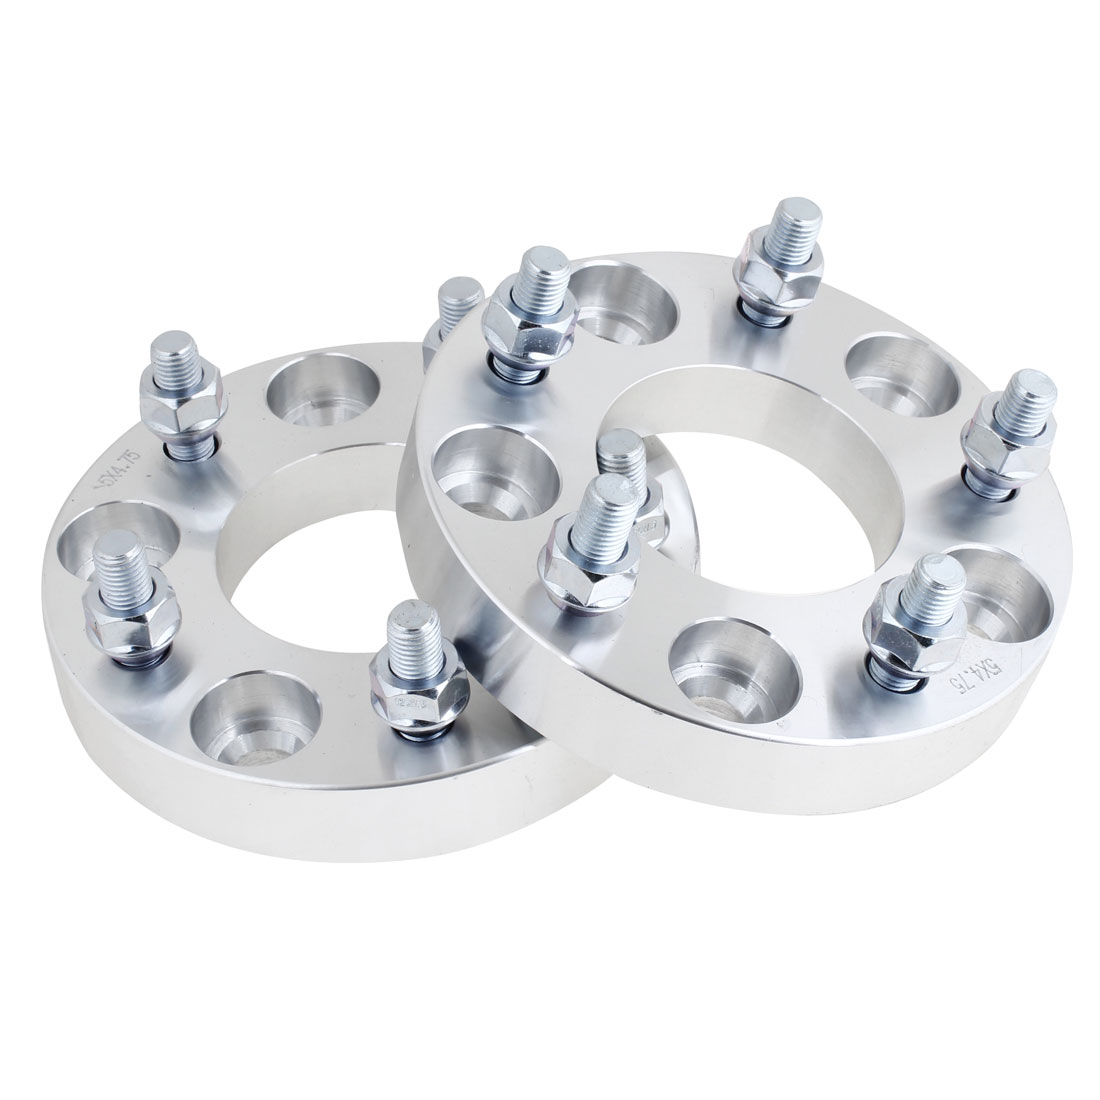 "2 Pcs 1"" Thickness Wheel Spacers 5x4.75"" Adapters 5 Lug 12x1.5 Studs for Lexus"